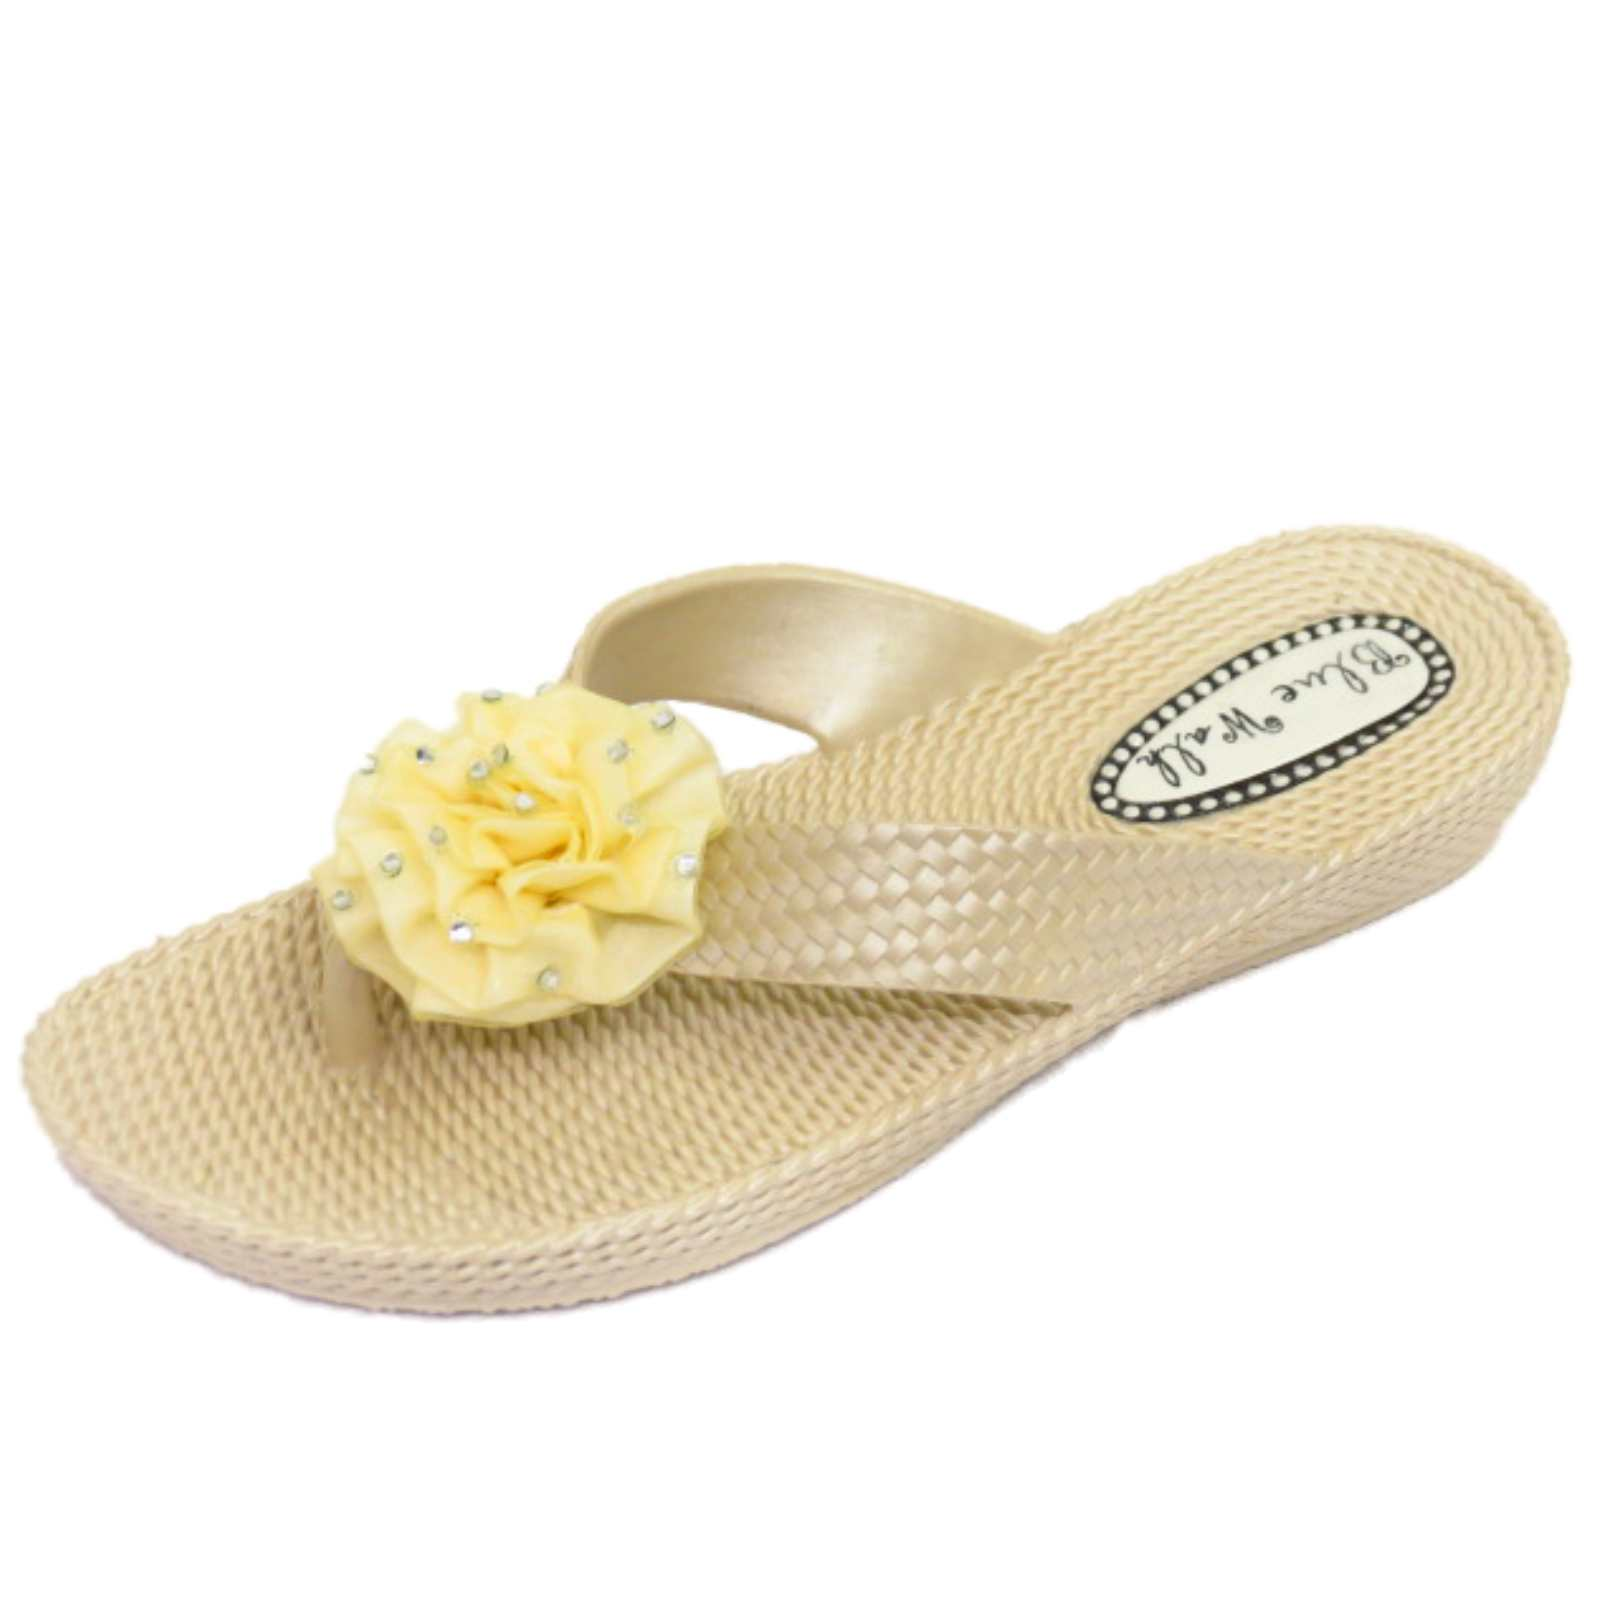 9ebf9a785db81 Details about WOMENS FLAT TOE-POST BEIGE SANDALS FLIP-FLOP BEACH SLIP-ON  JELLY SHOES SIZES 3-8